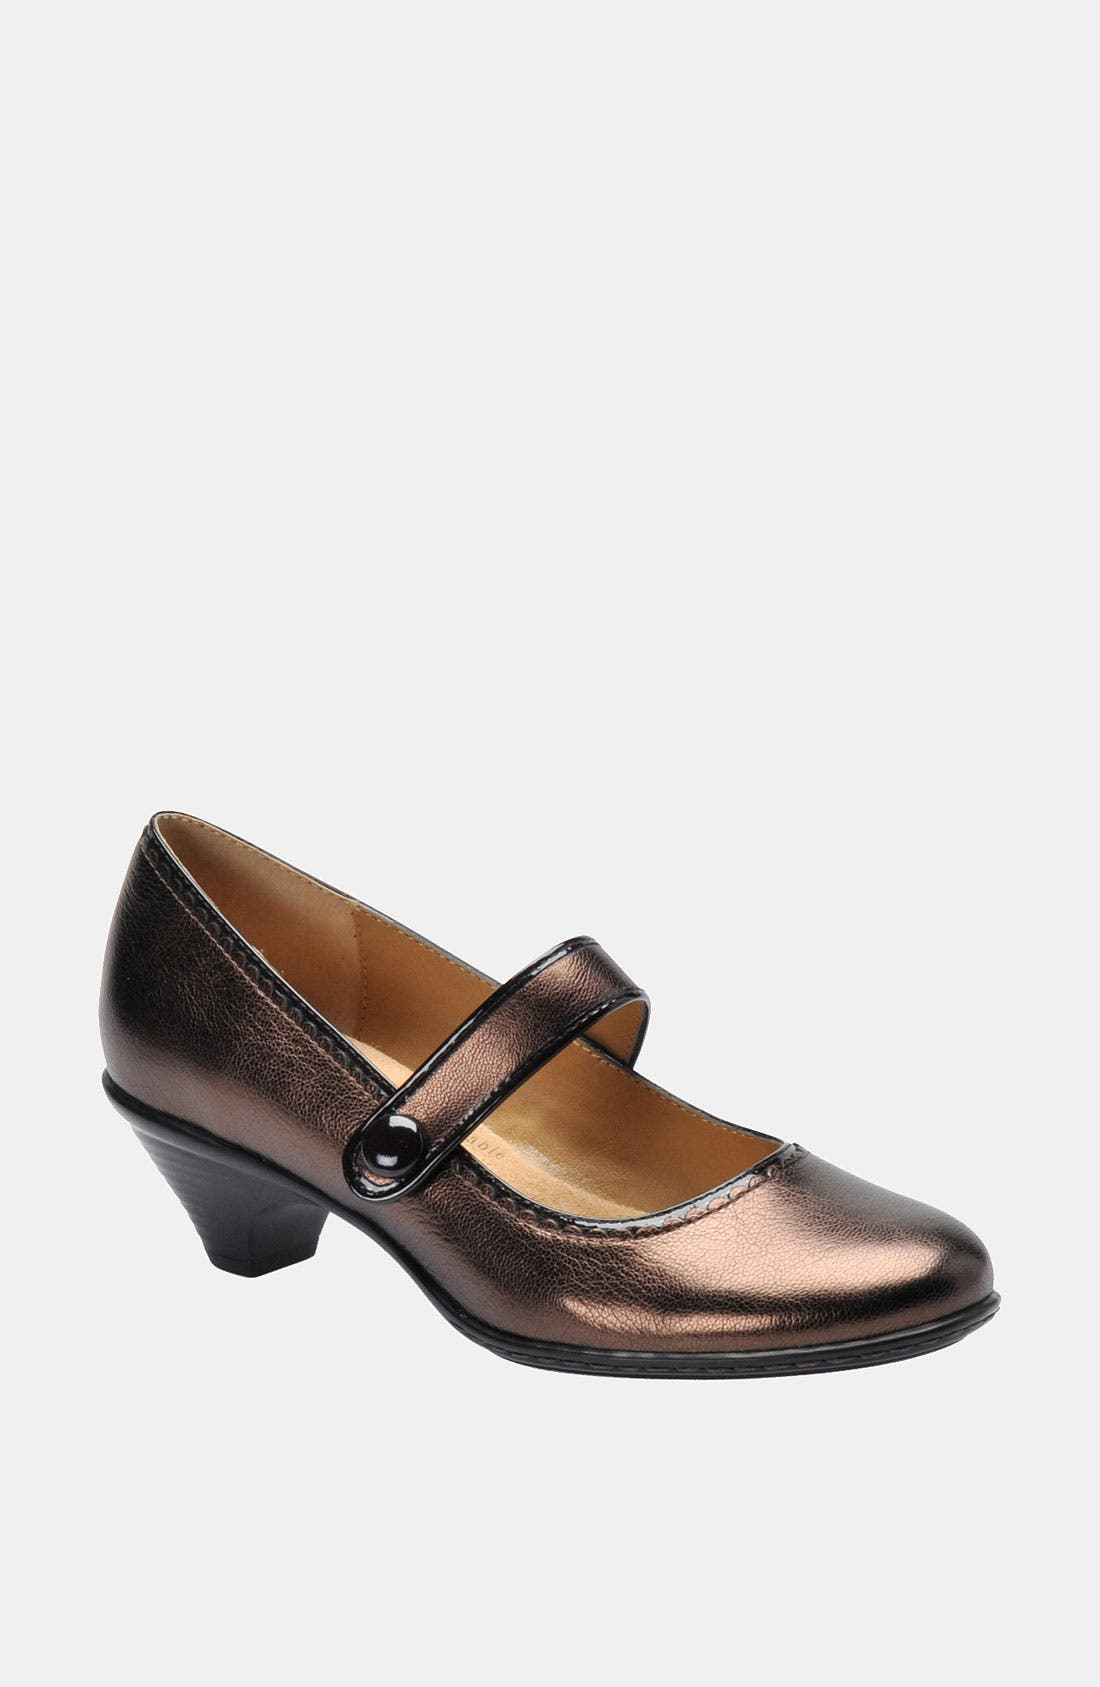 Alternate Image 1 Selected - Softspots 'Shandie' Mary Jane Pump